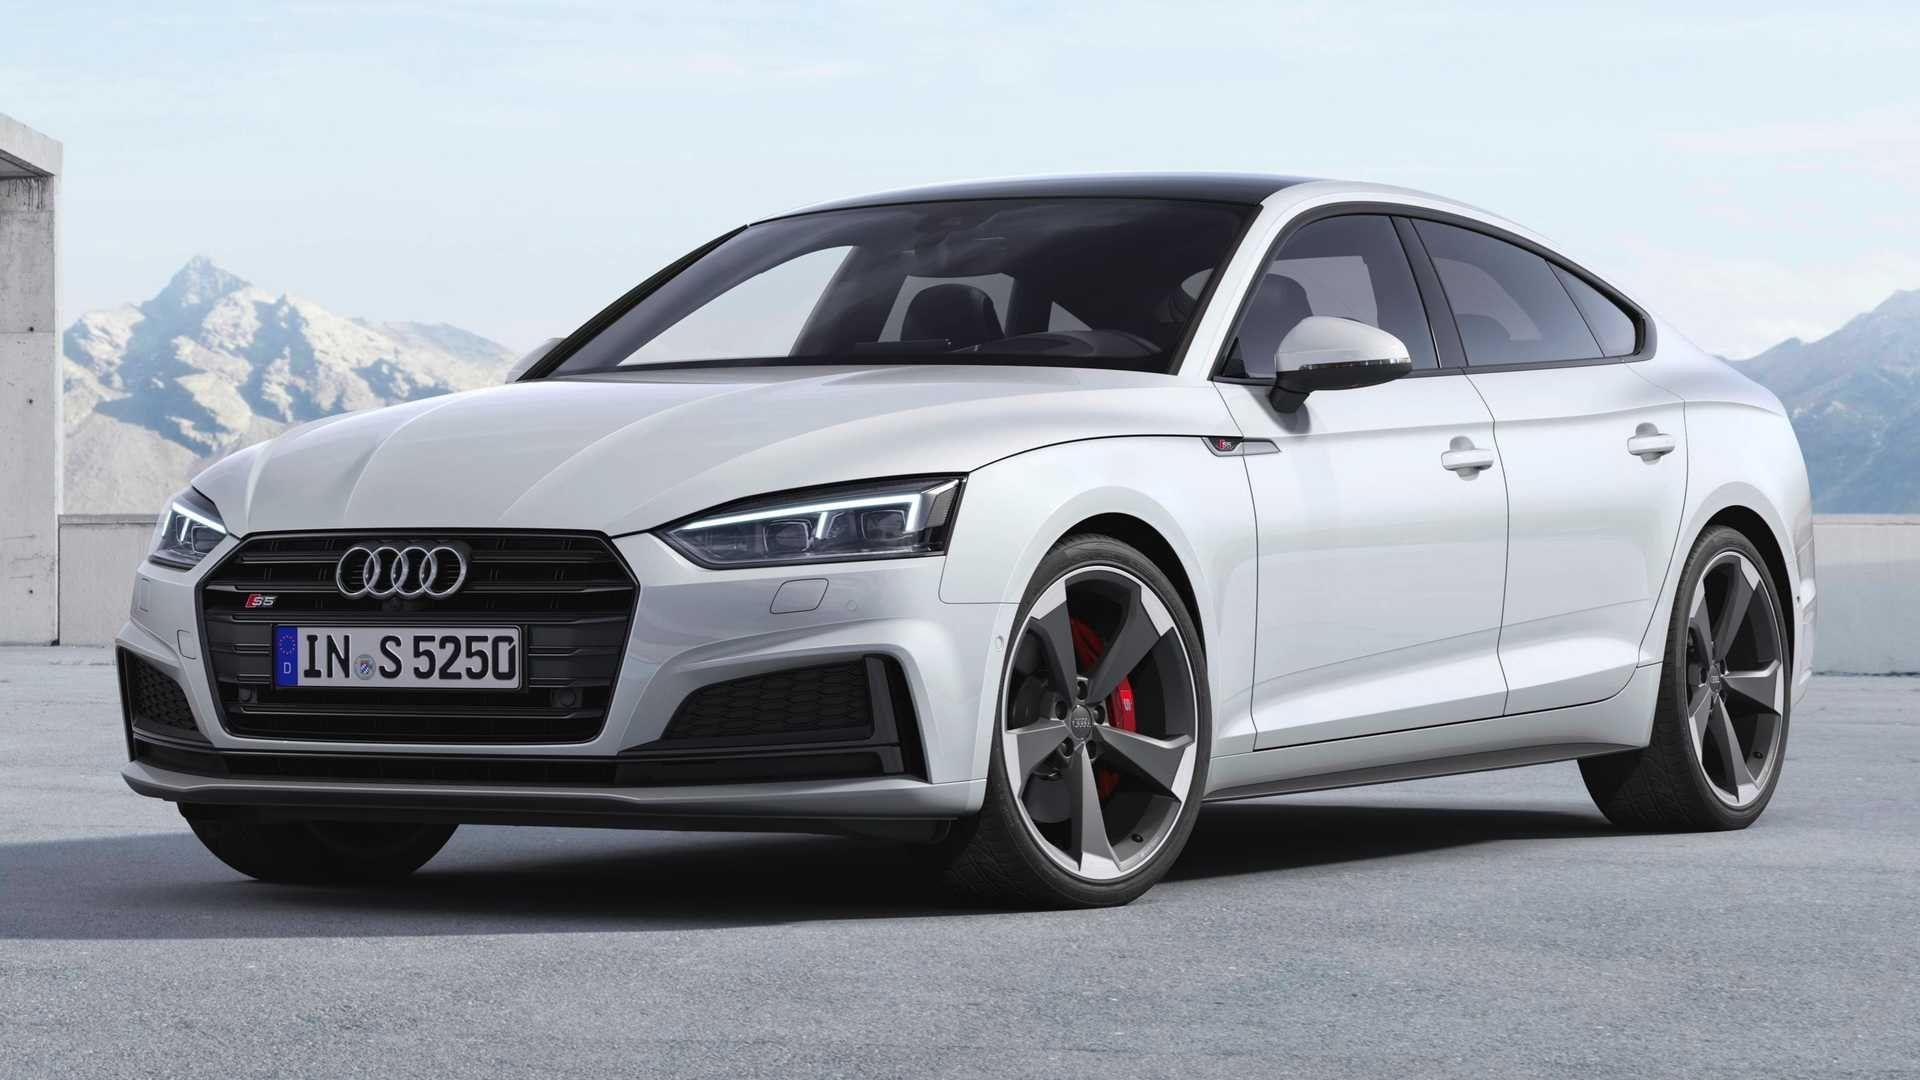 2021 All Audi A9 Exterior In 2020 Audi S5 Audi S5 Sportback Audi Rs5